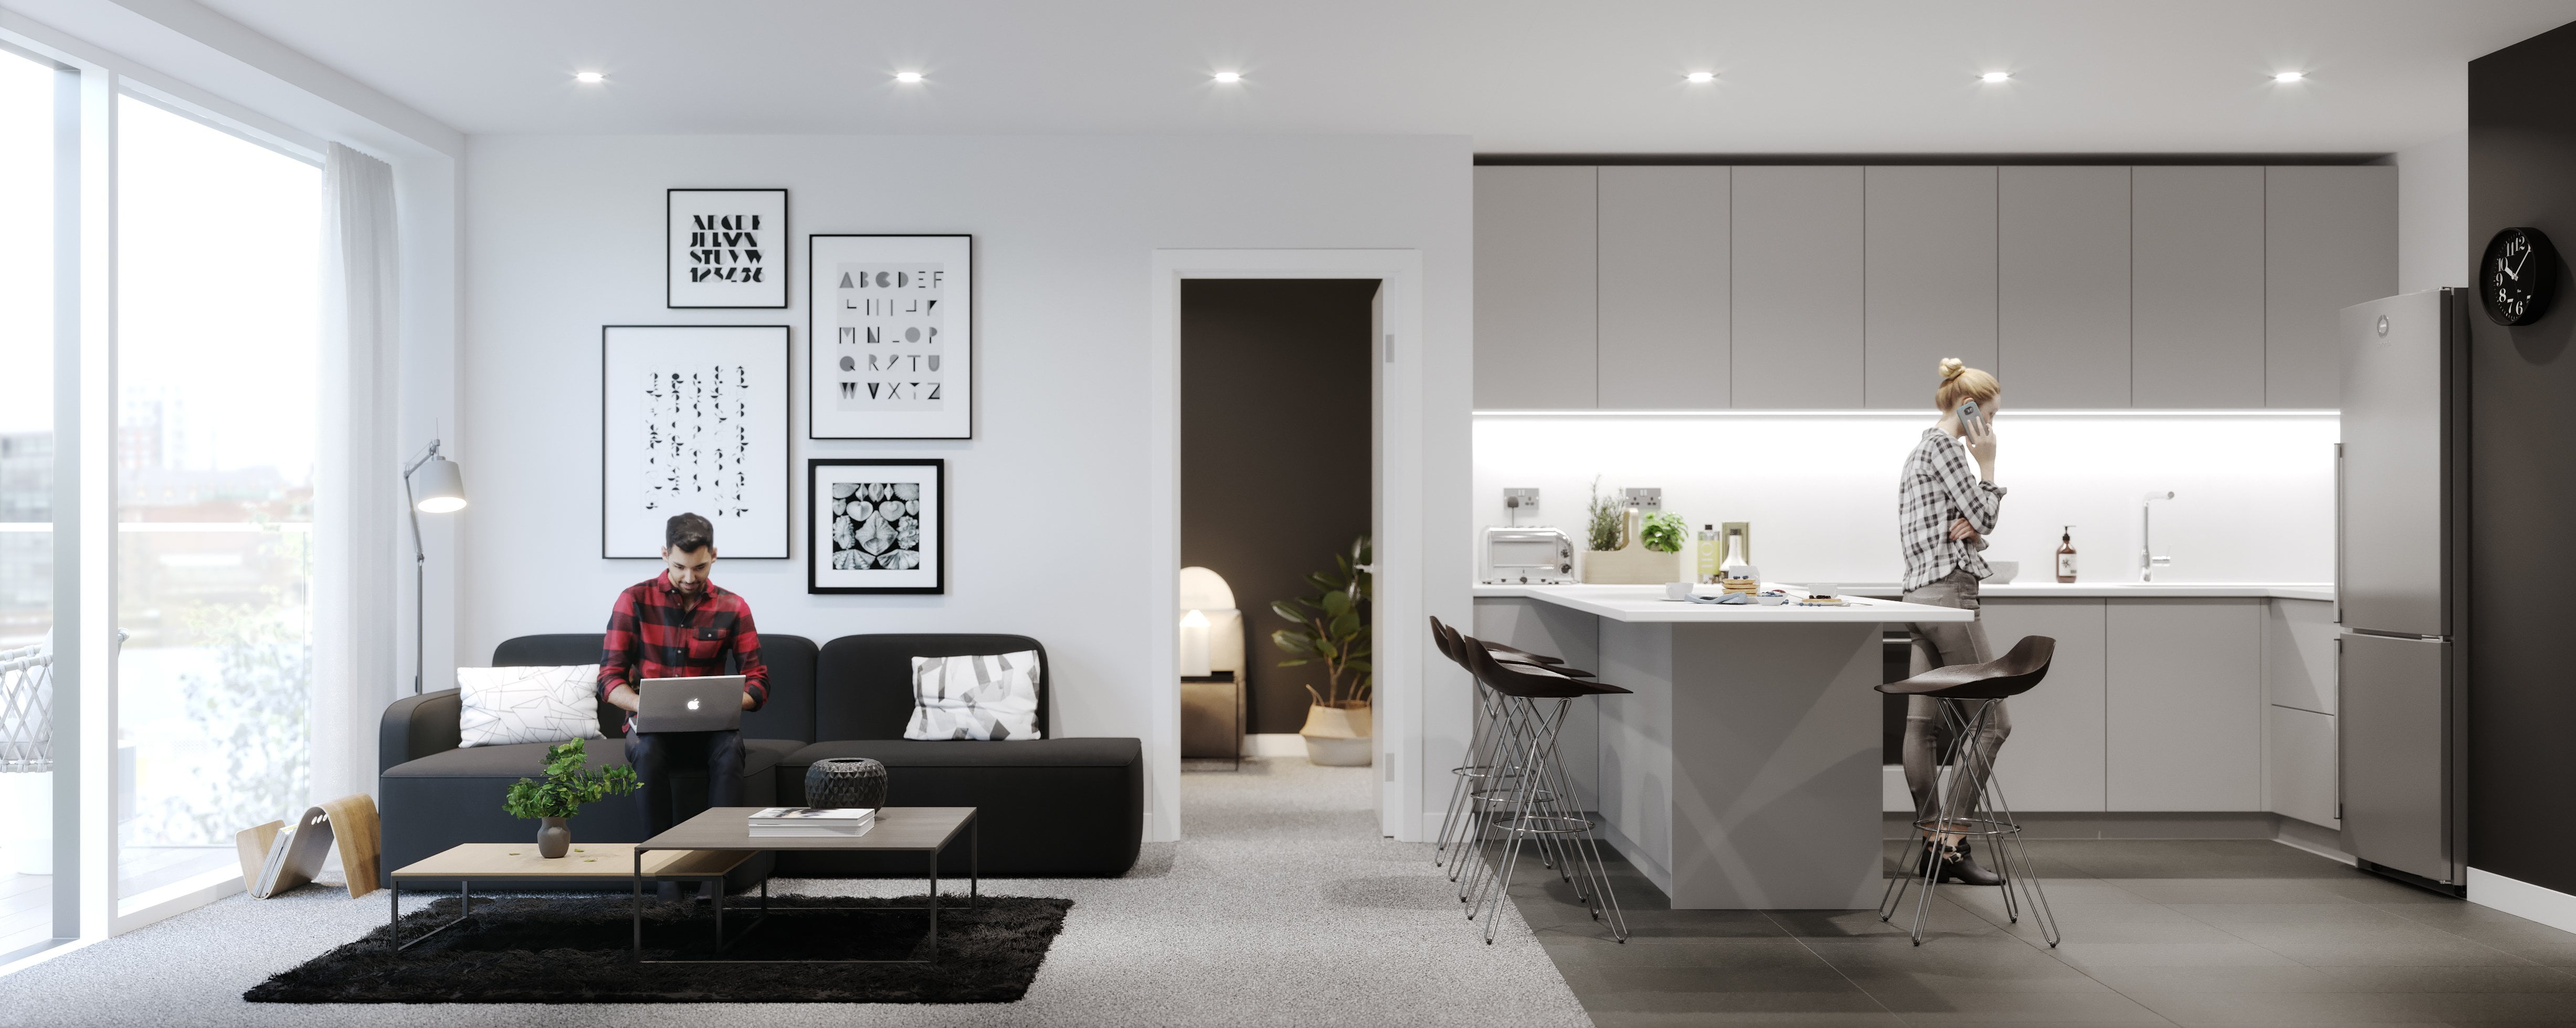 Blackfriars Apartment in Manchester